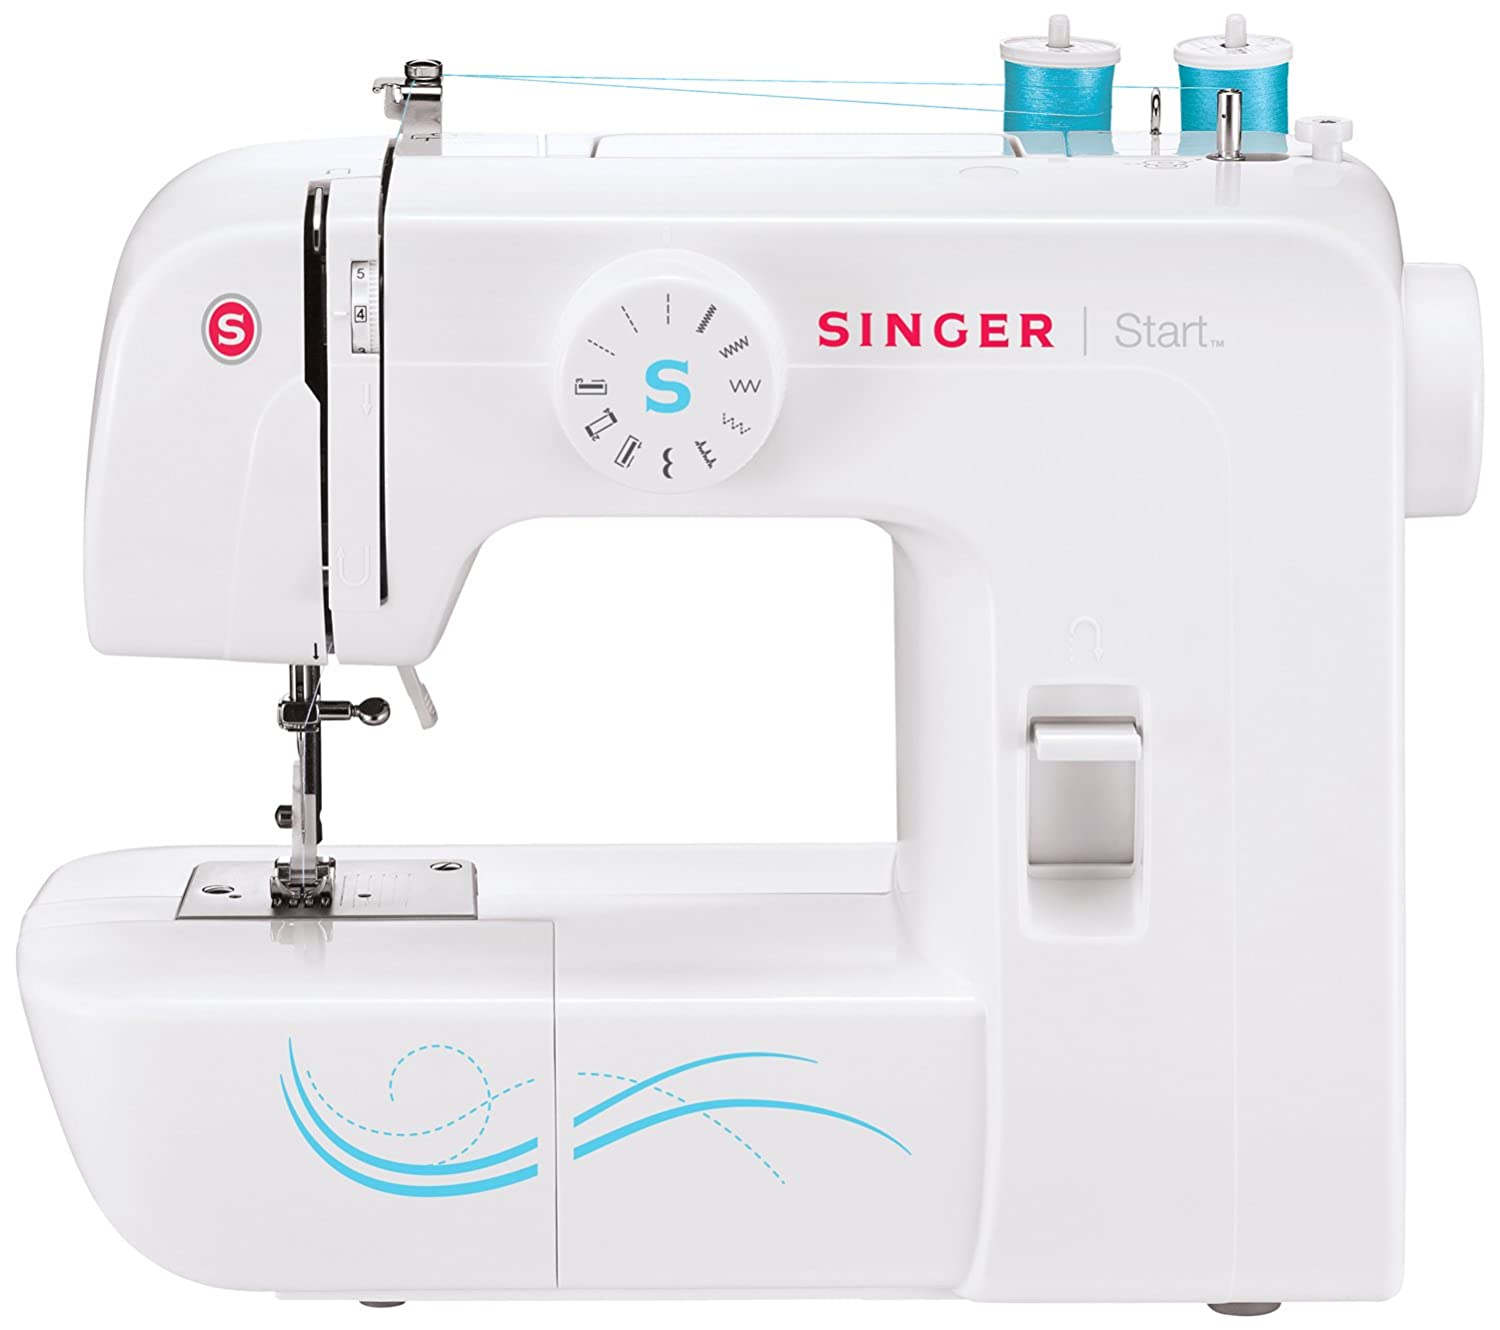 Singer Pixie Plus Best Small Sewing Machine The Sewing Critic